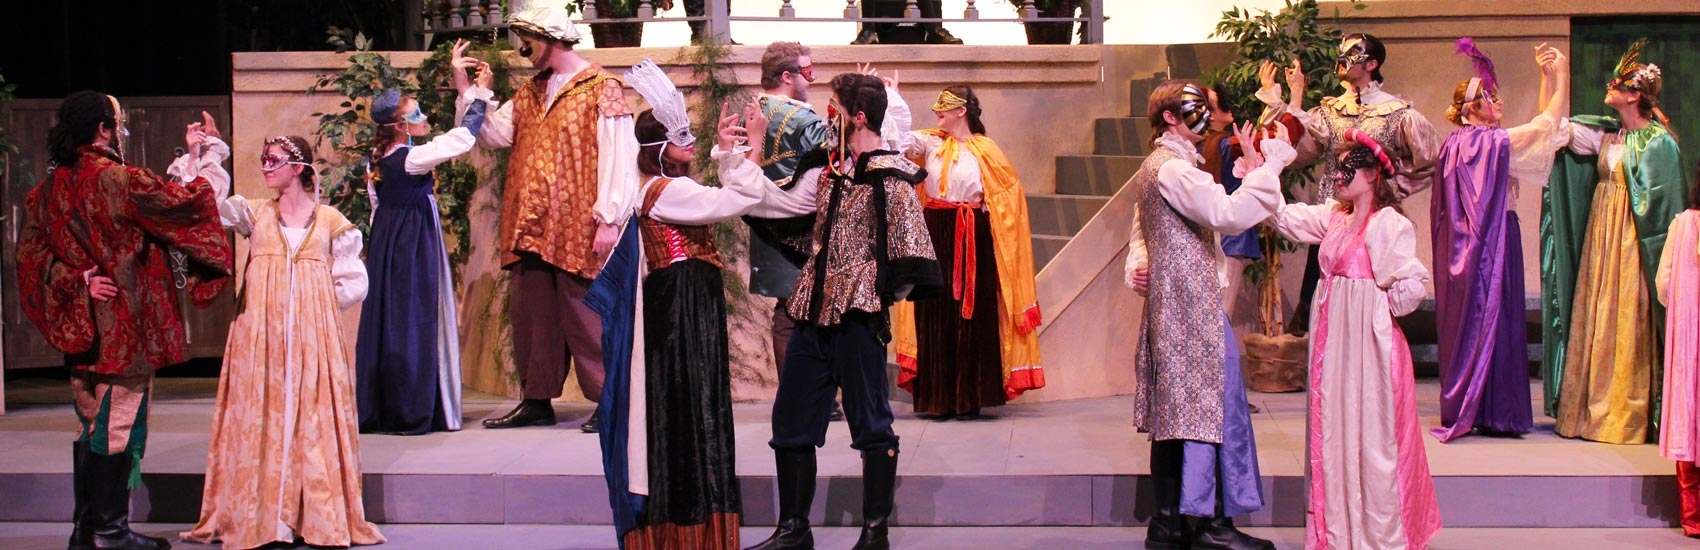 USF Theatre Production: Much Ado About Nothing